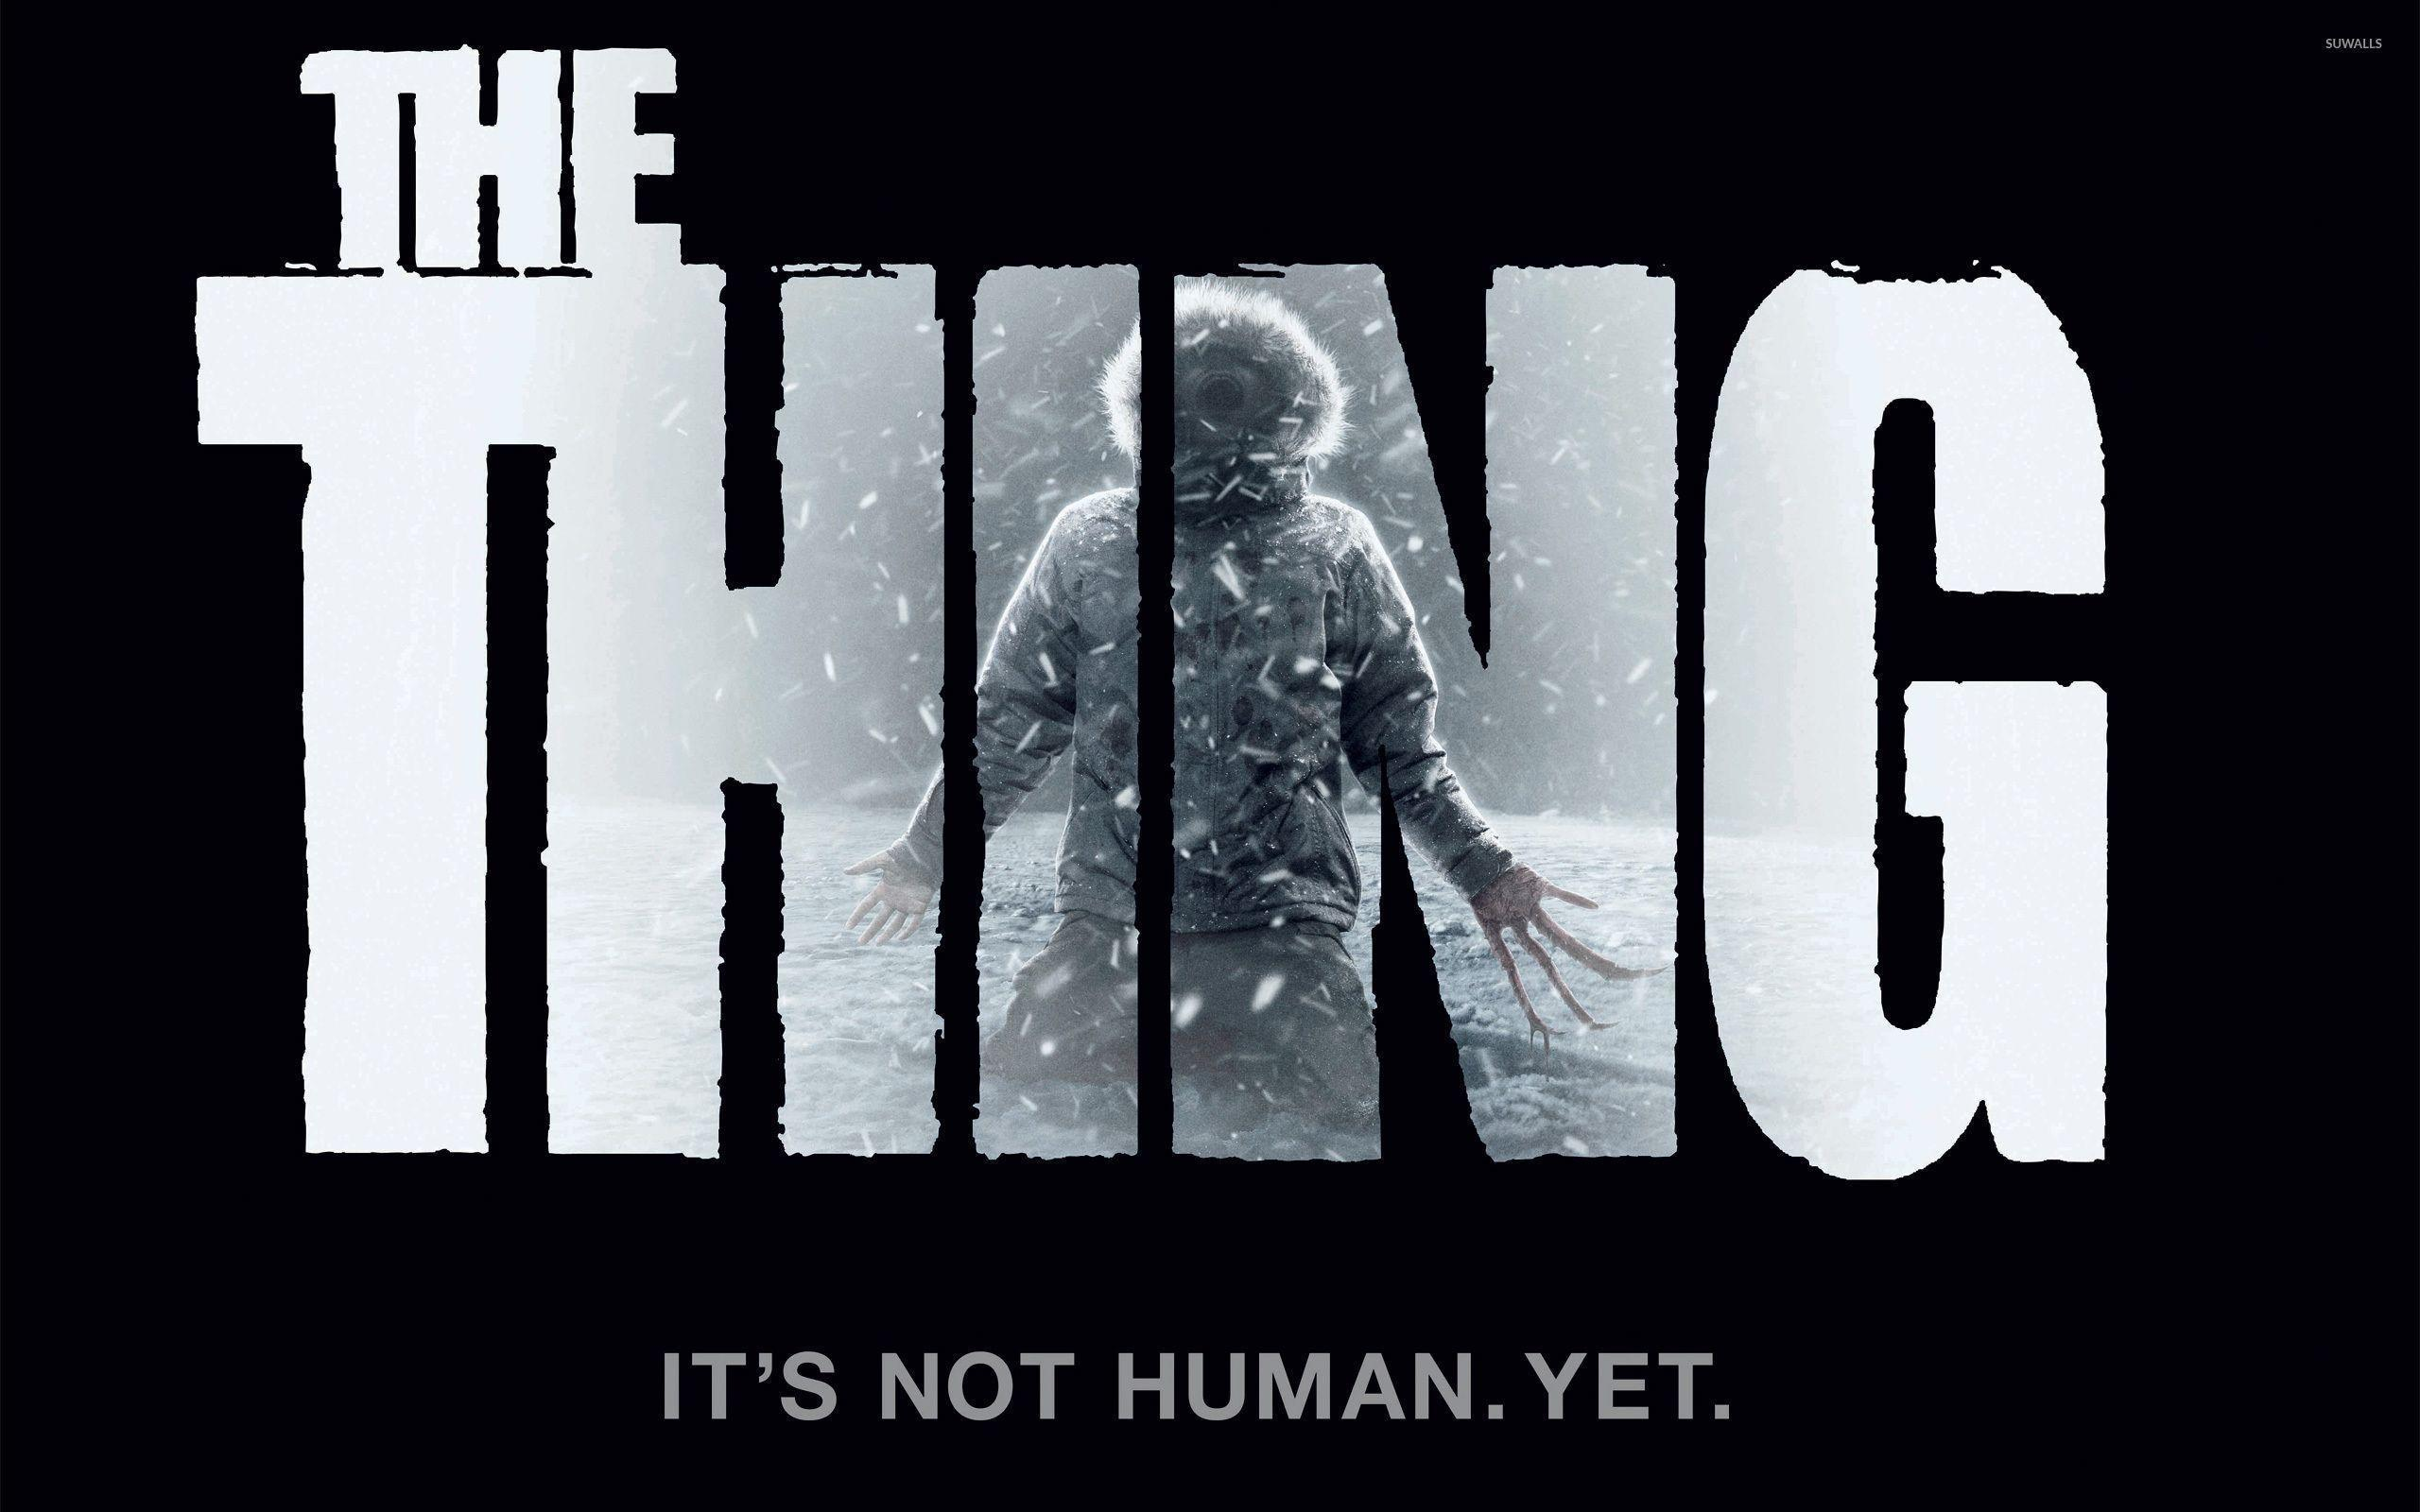 The Thing wallpaper - Movie wallpapers - #8379